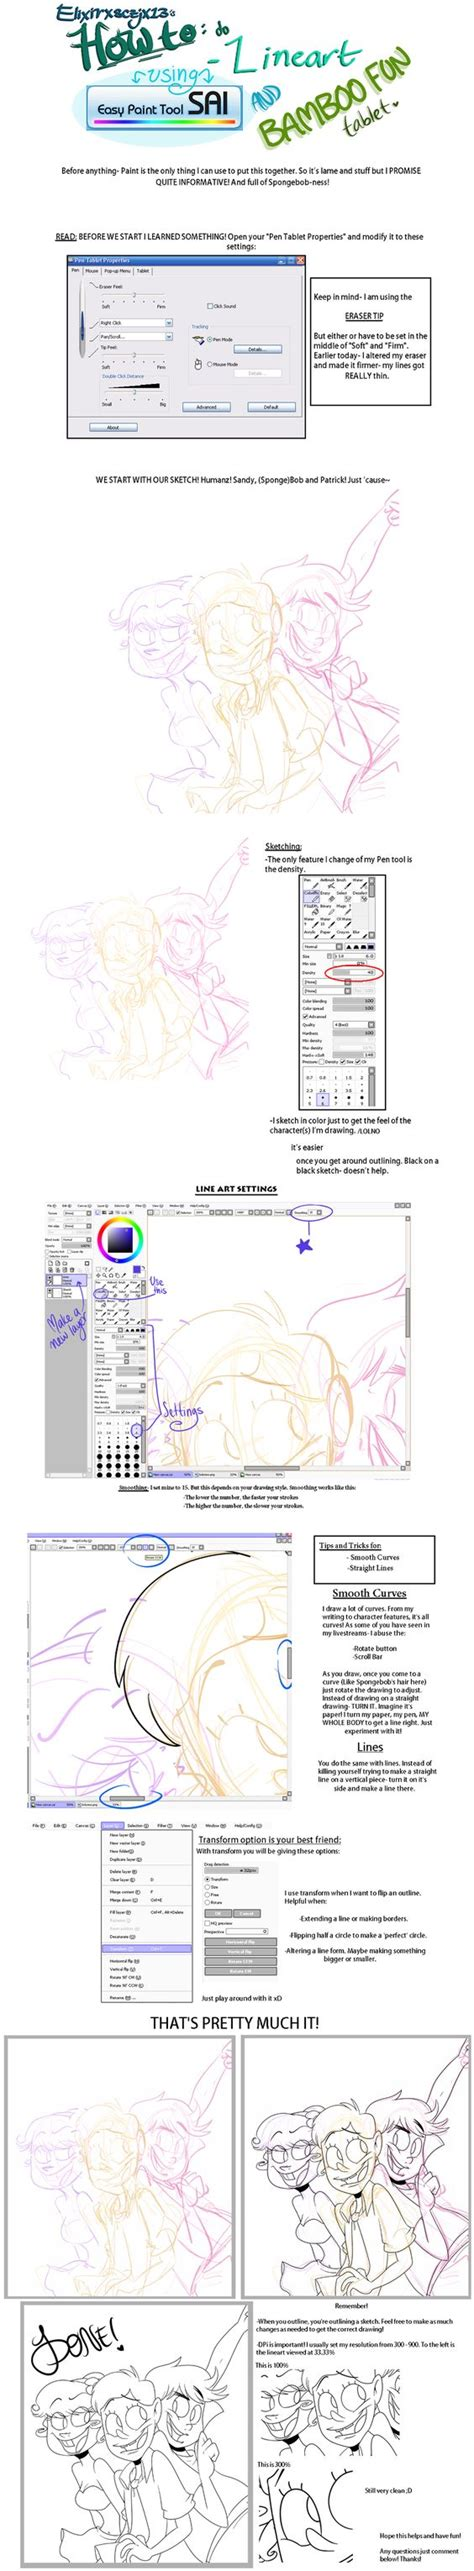 paint tool sai reference lineart on paint tool sai by elixirxsczjx13 deviantart